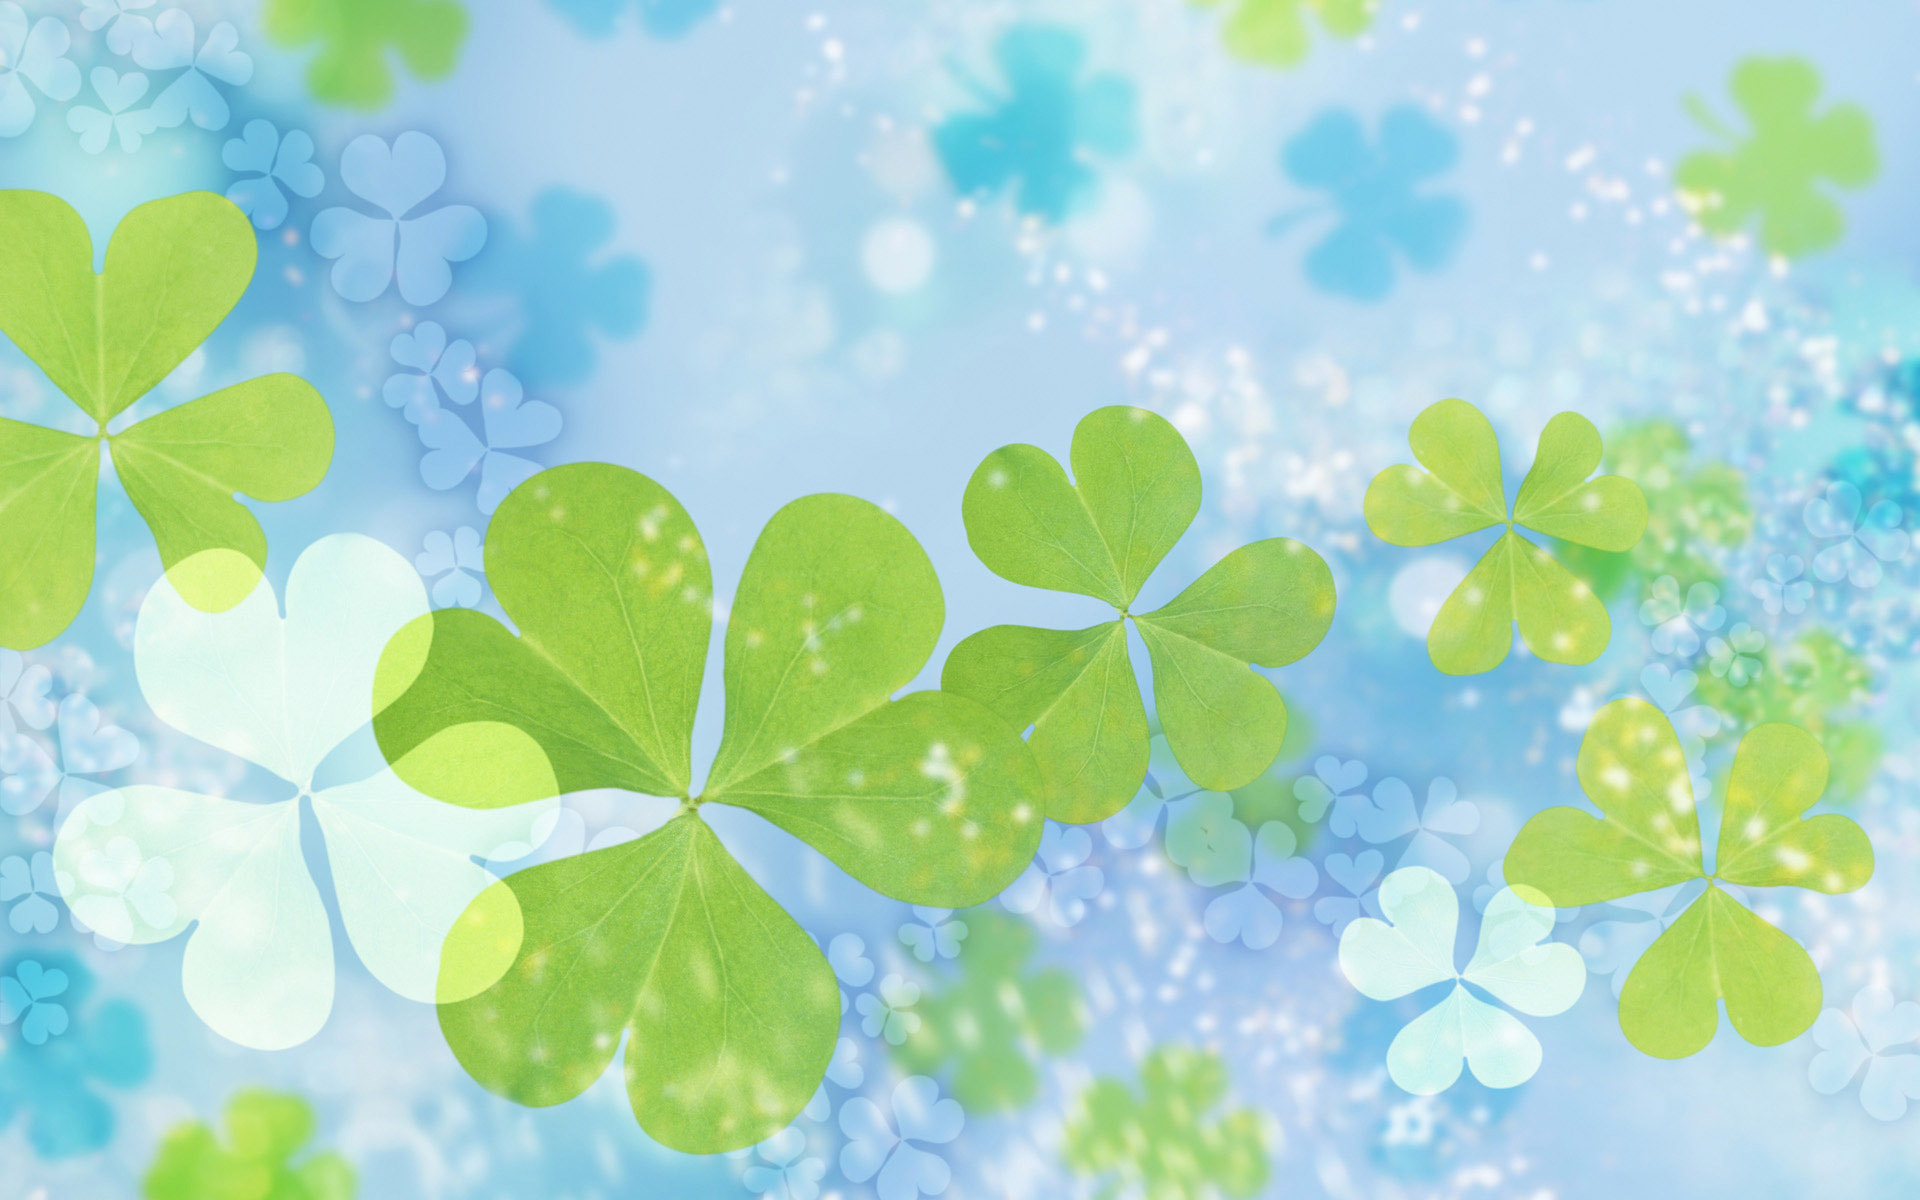 St Patrick Background Images: St Patrick's Day Wallpaper Backgrounds